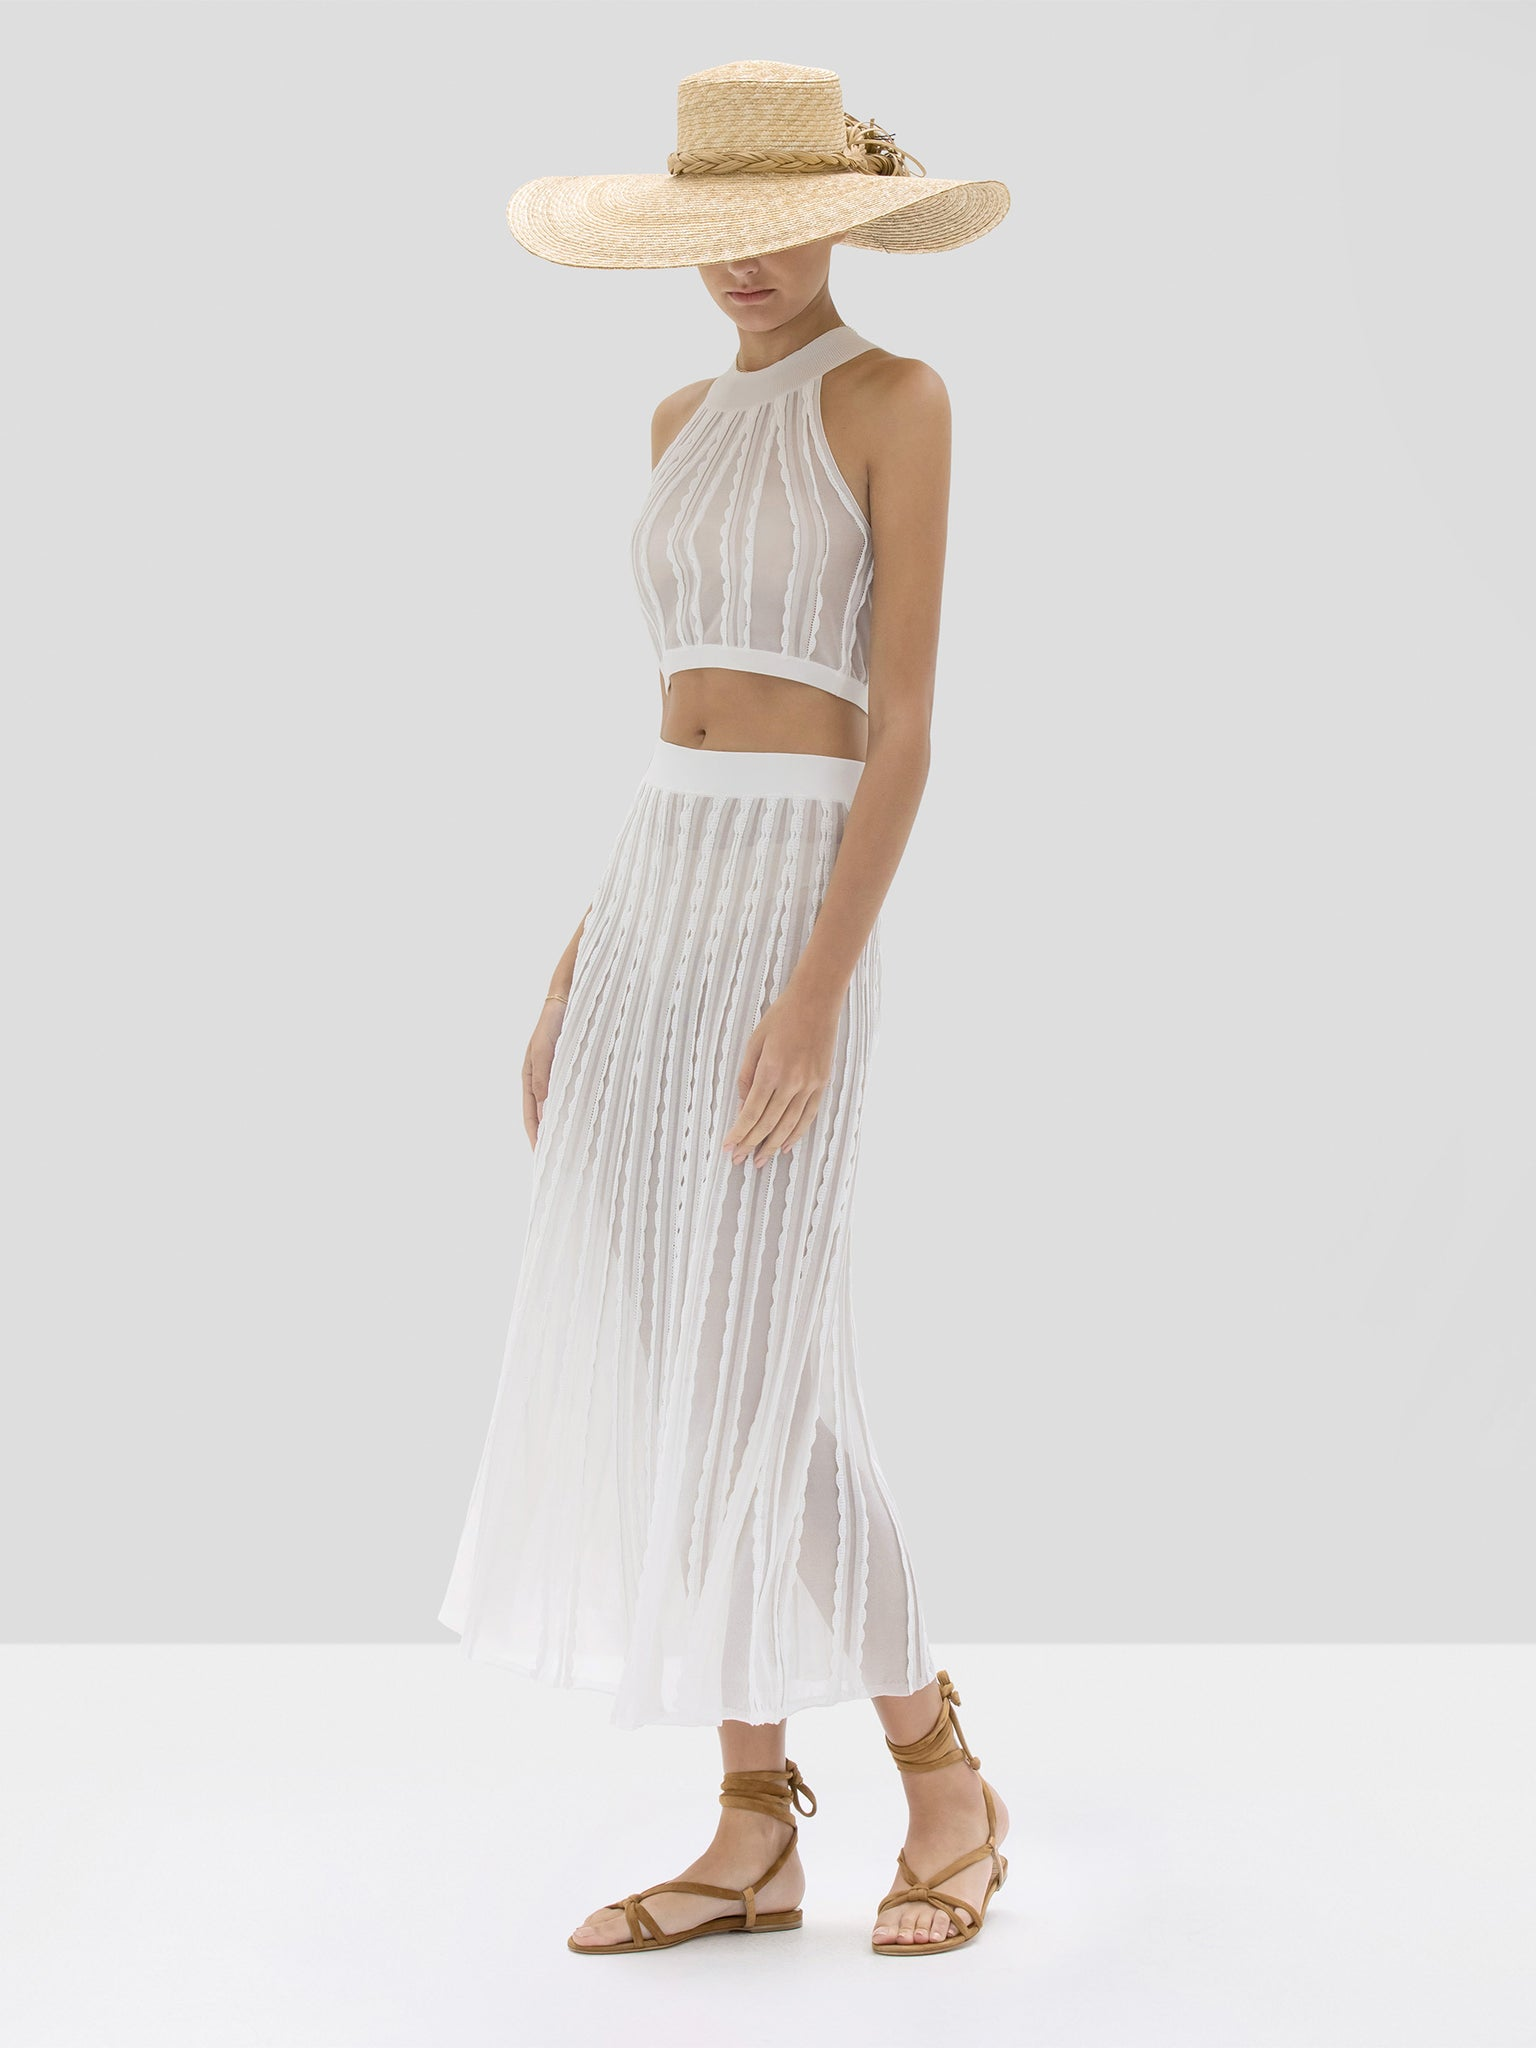 Alexis Keva Crop Top and Zea Skirt in White from Spring Summer 2020 Collection